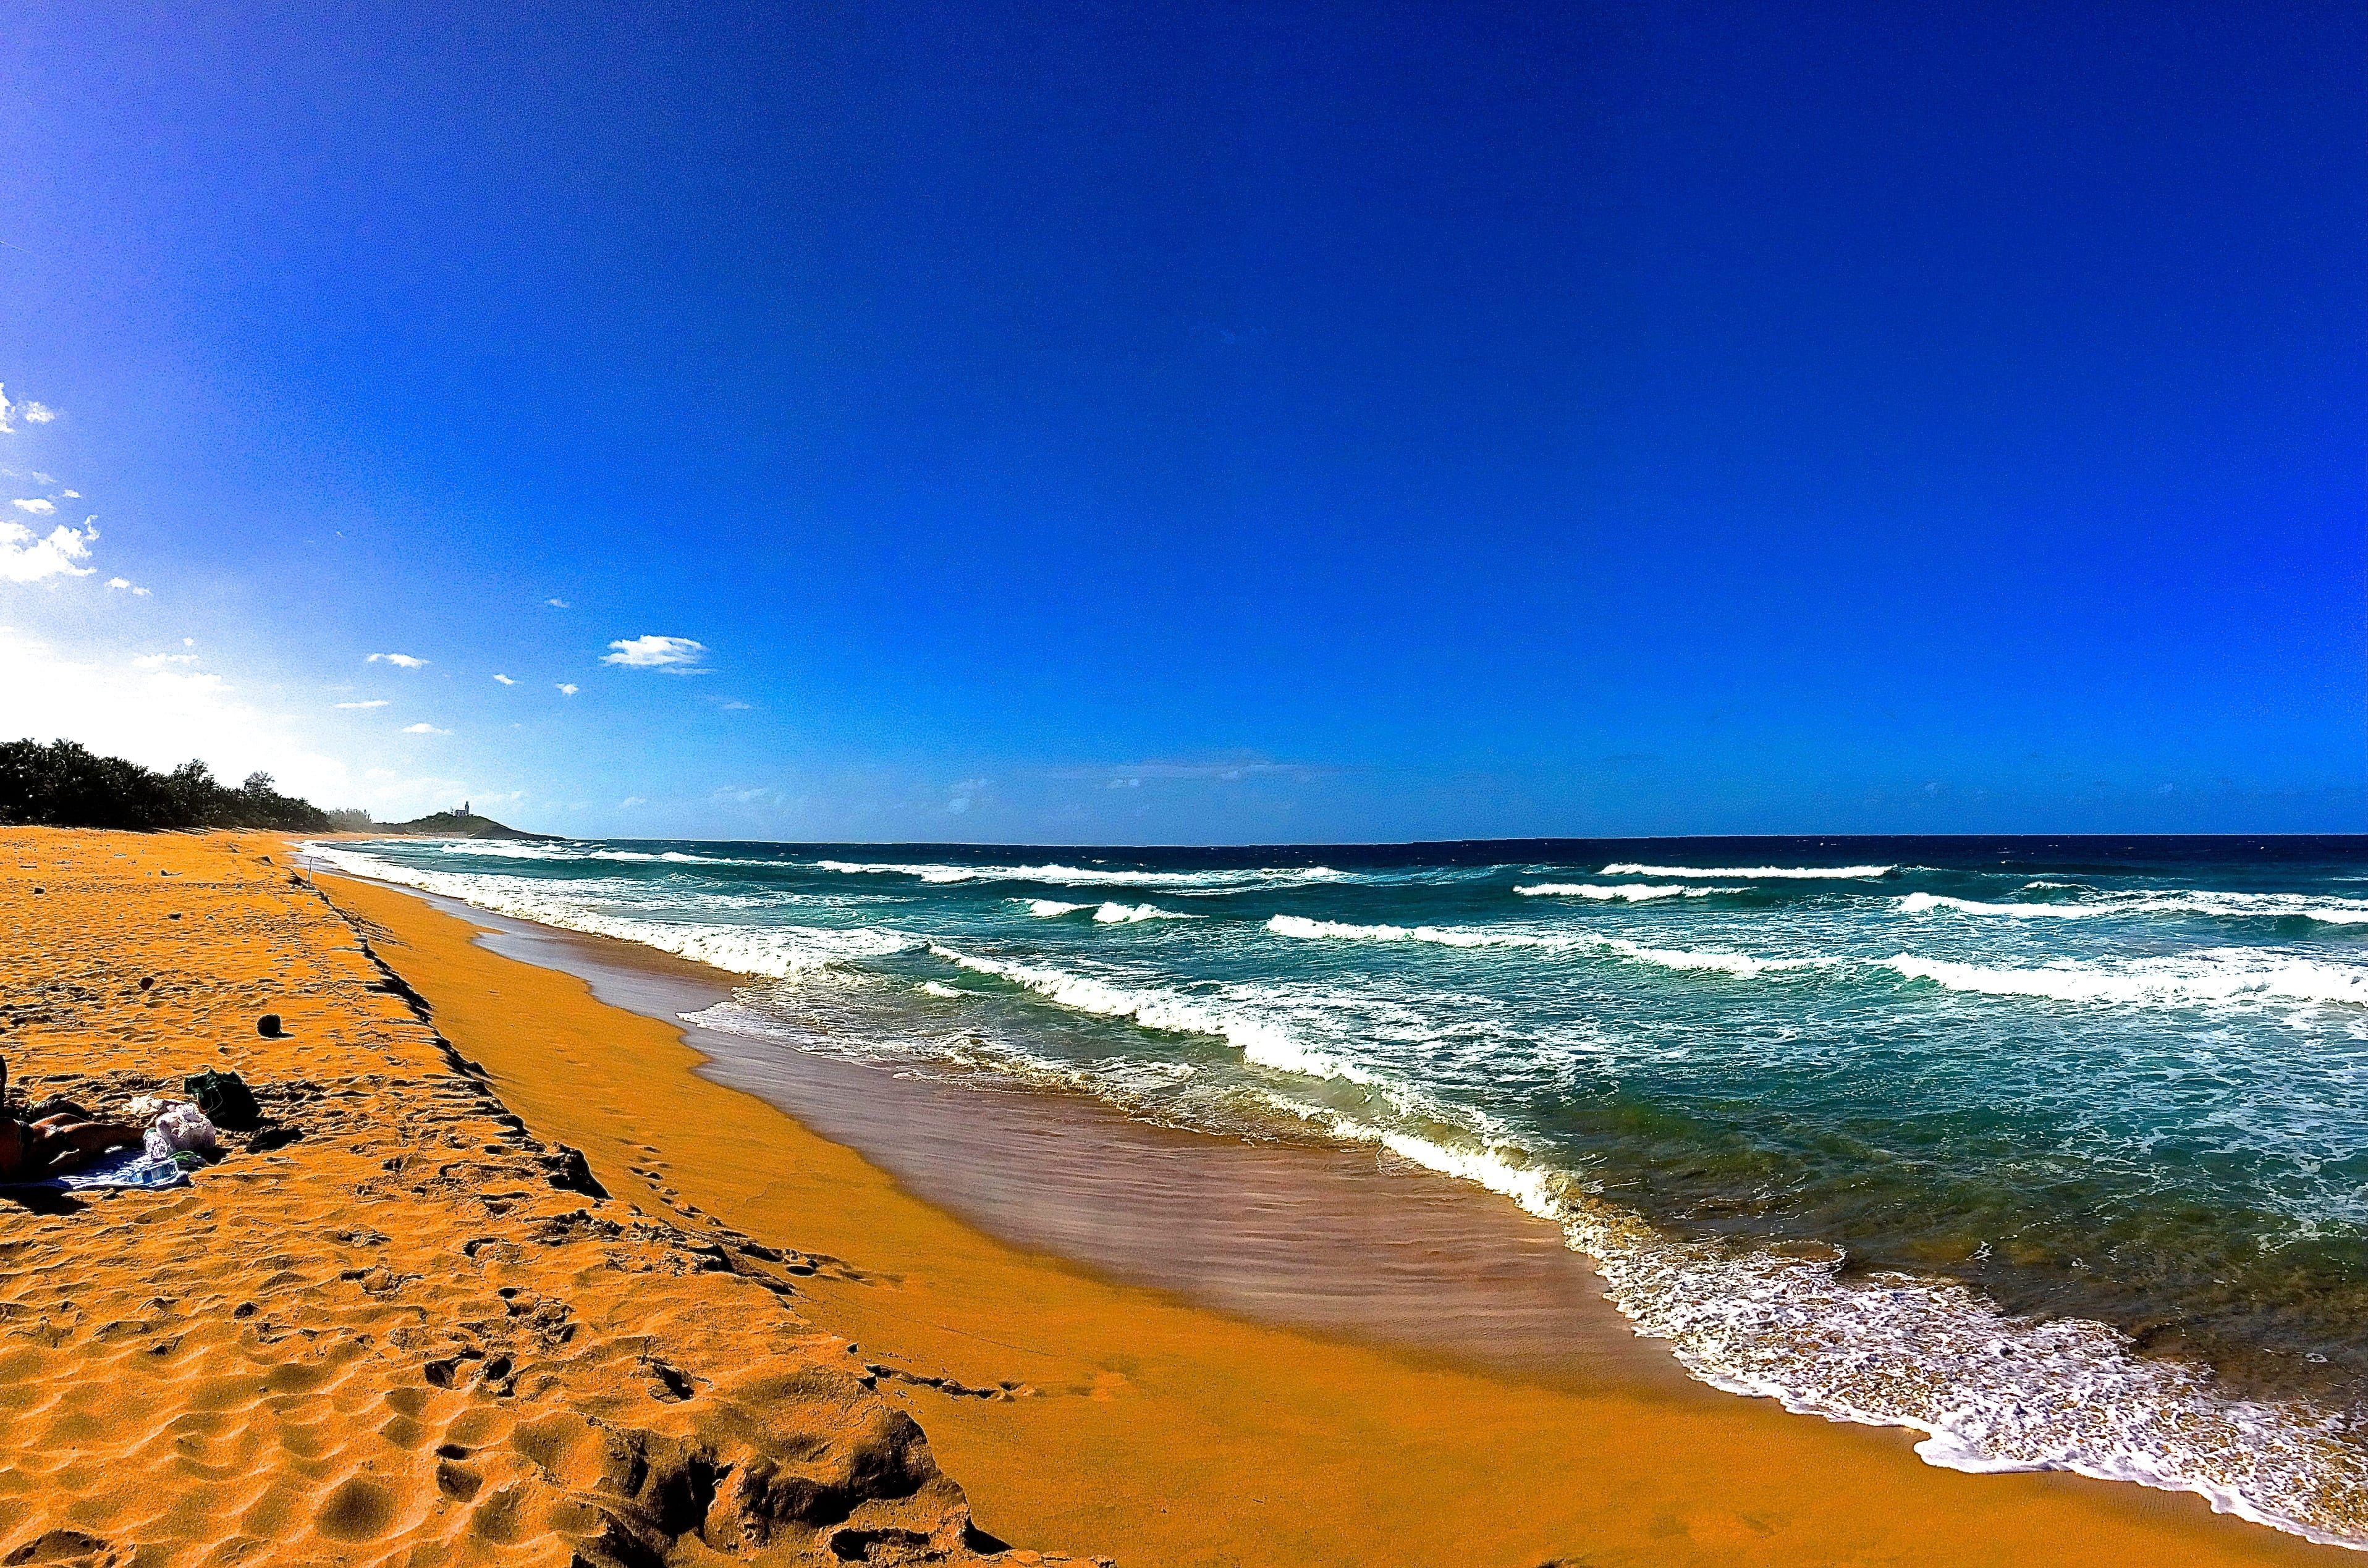 Photo of the beach we visited at Arecibo